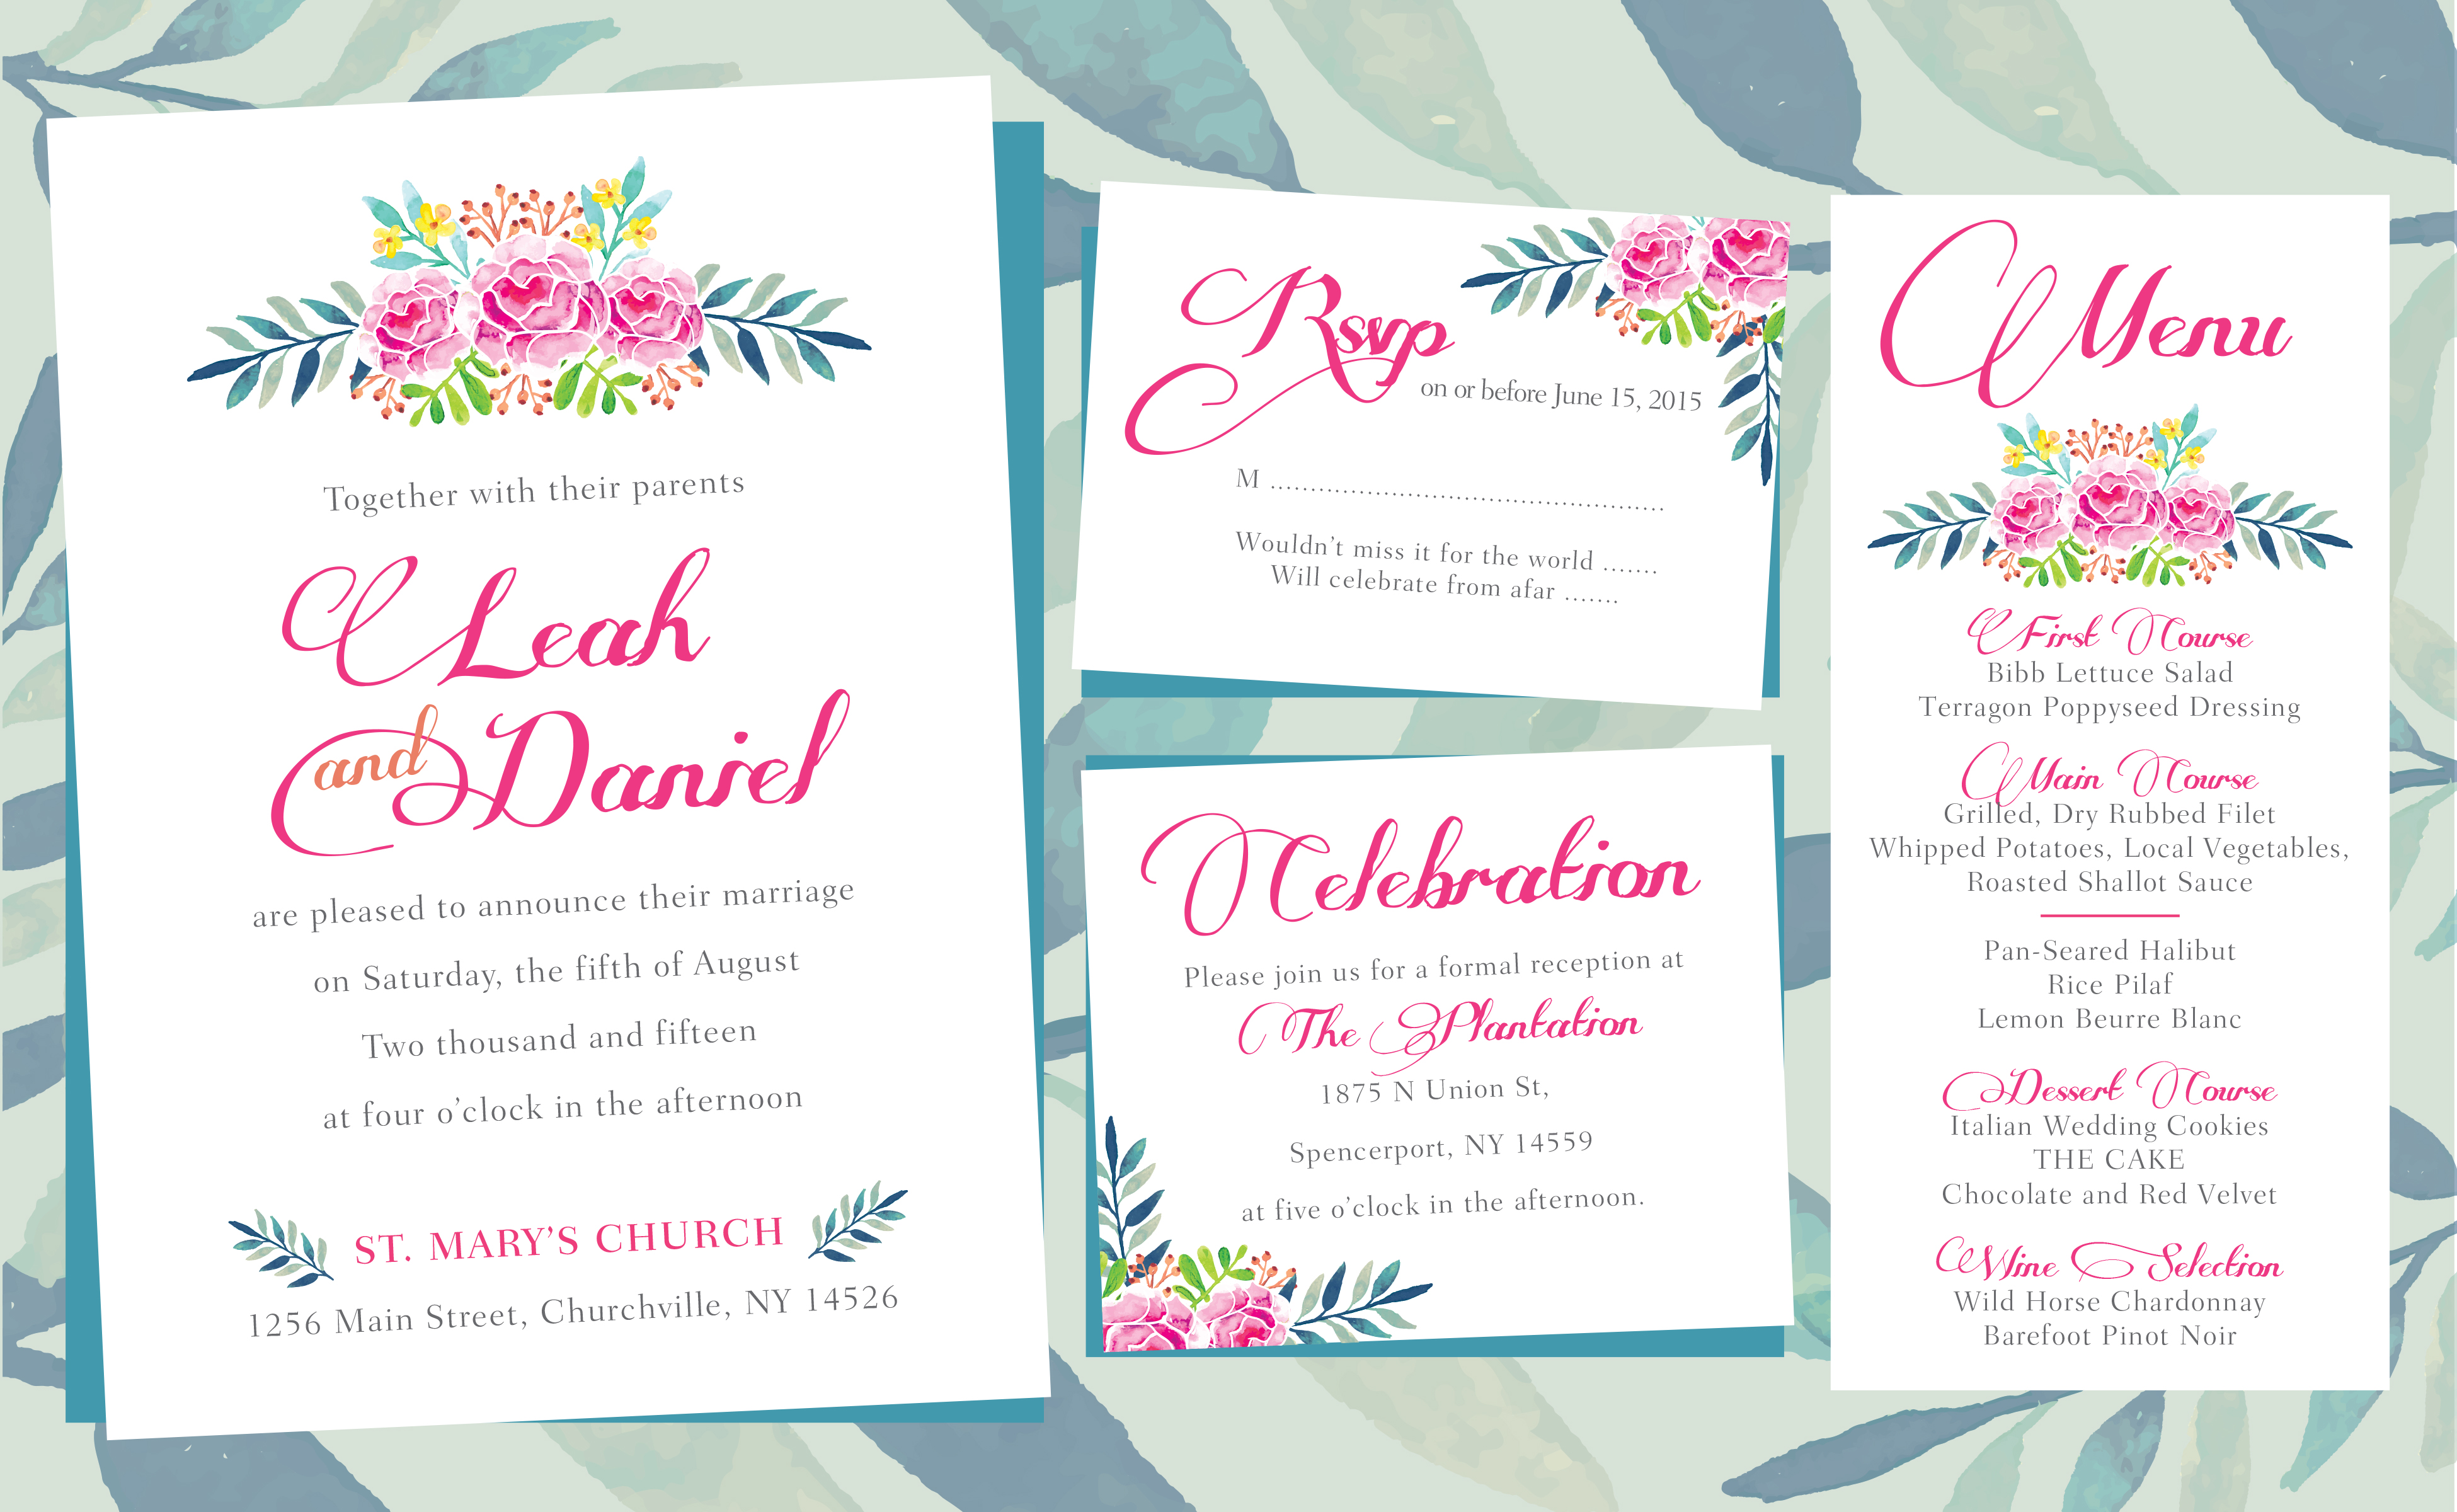 floral wedding invitations floral wedding invitations Flower invitation Layout